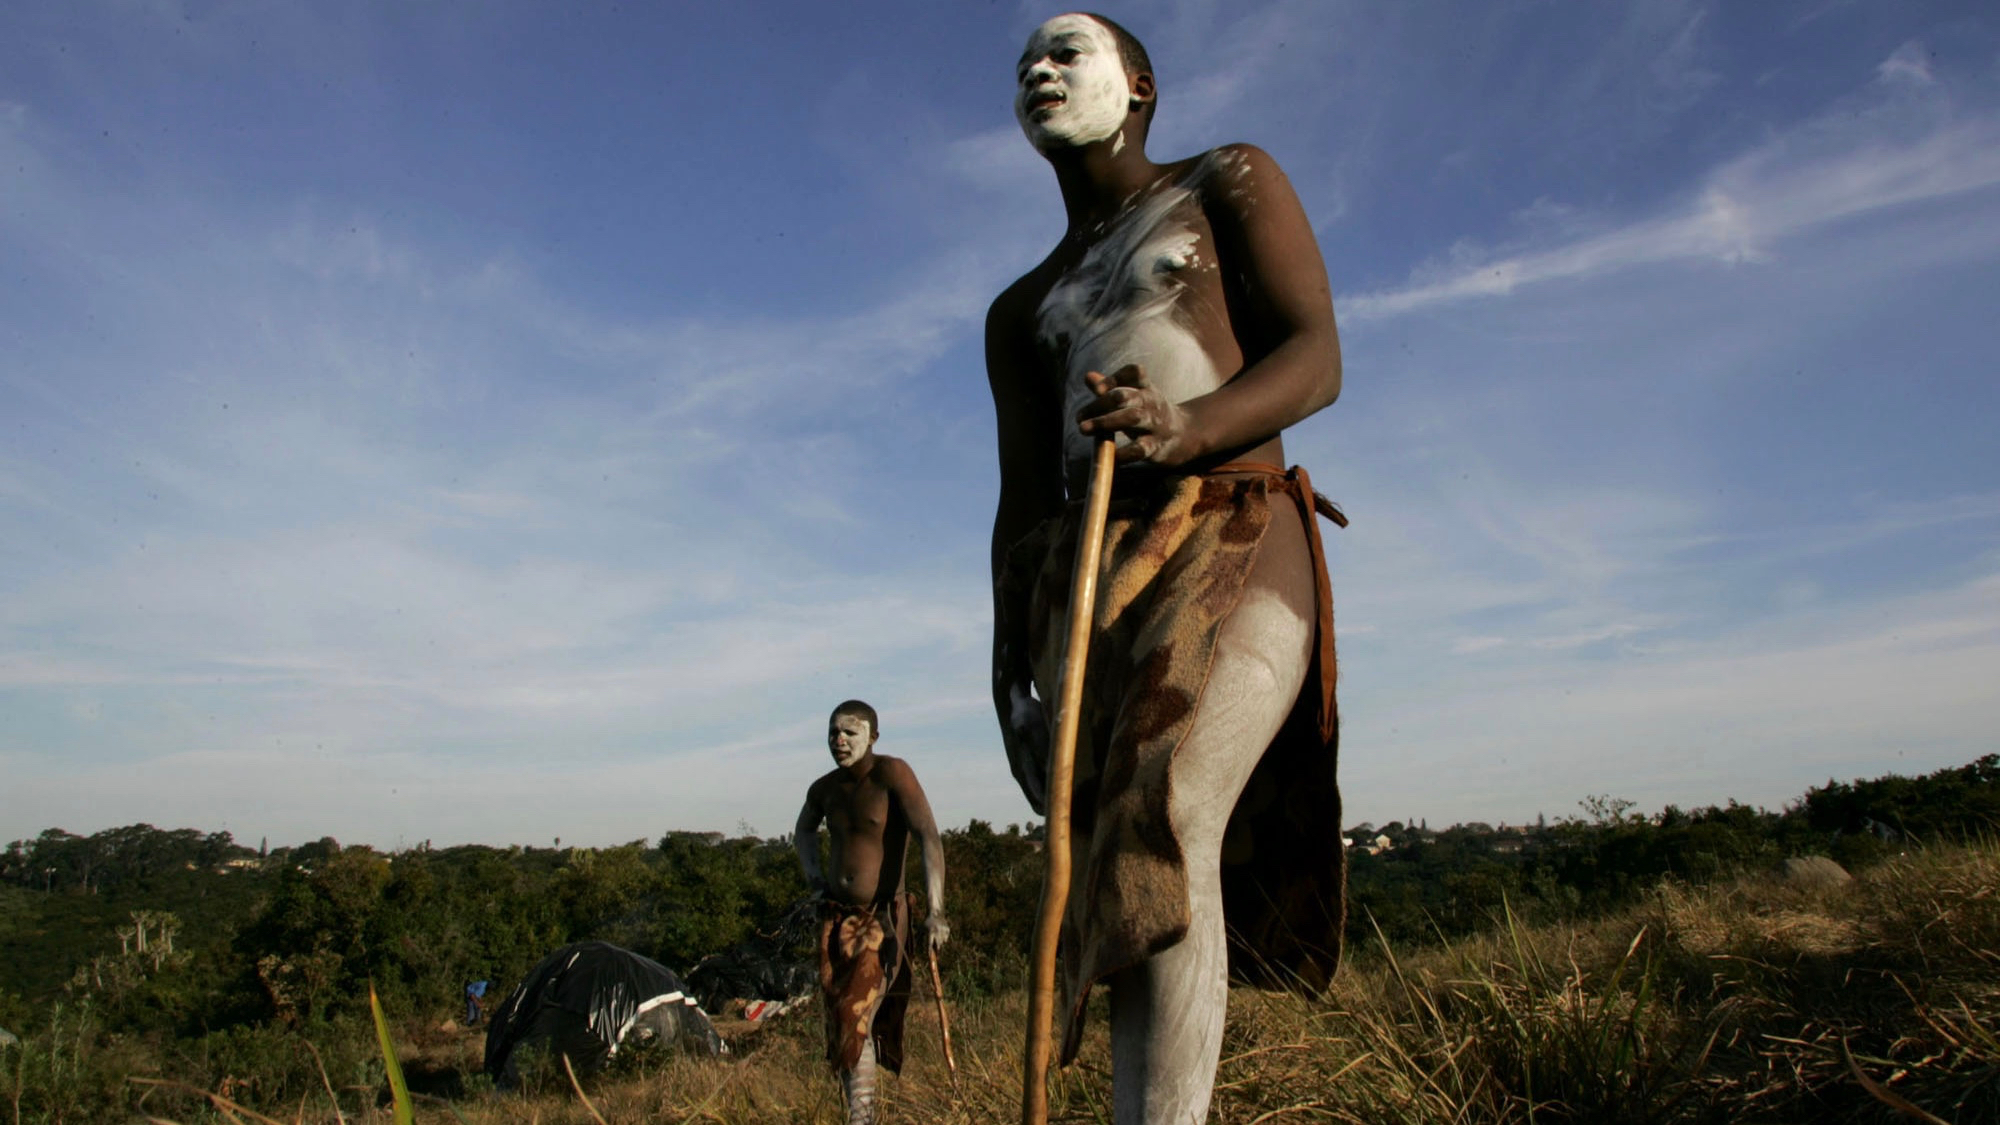 Young unidentified initiates, with their faces and parts of their bodies caked in white lime clay, and blankets used as loin cloths, during their rite of transformation from boy to manhood near Port St, John's, South Africa, Saturday July 8,  2006. During the process boys, often under age, leave their family homes to fend for themselves, with fellow initiates, during which time they are circumsised and face the elements of nature. The huts in the background are covered in heavy black plastic to ward off the winter night cold as they take part in the in the tribal Xhosa tradition.   (AP Photo/Obed Zilwa)